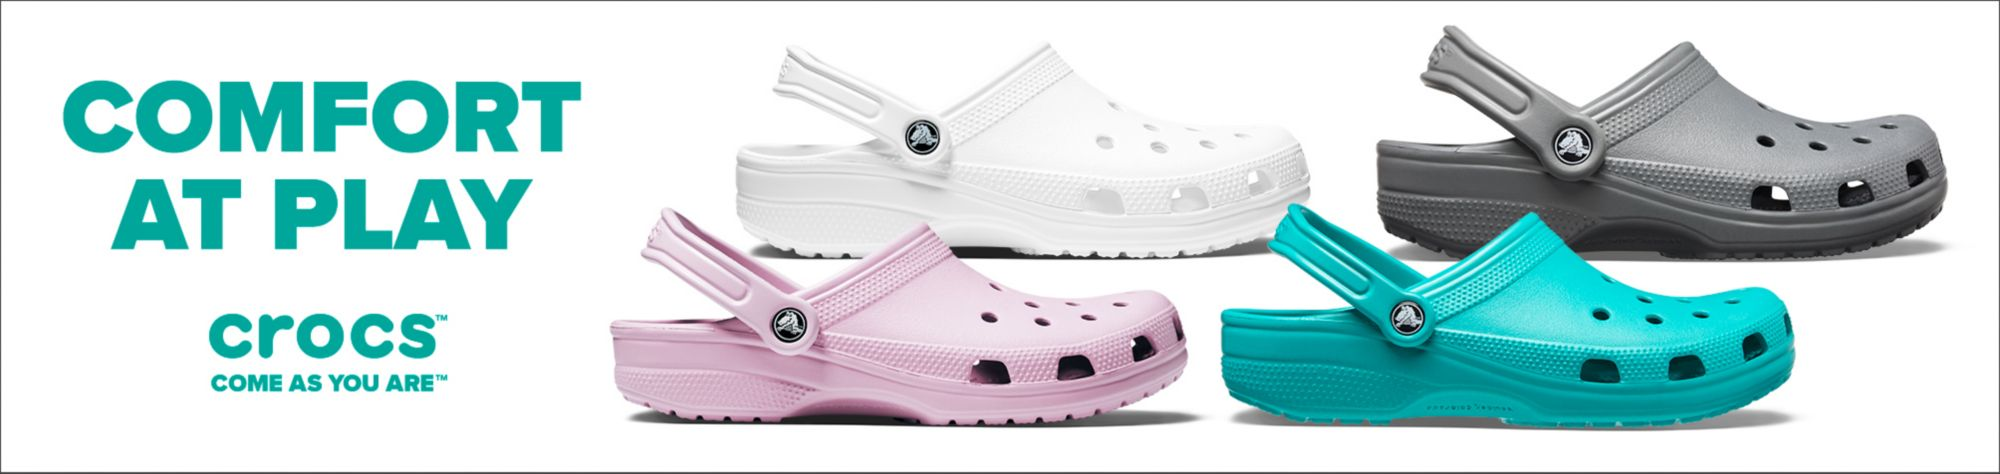 Comfort at Play - Crocs - Shop Now